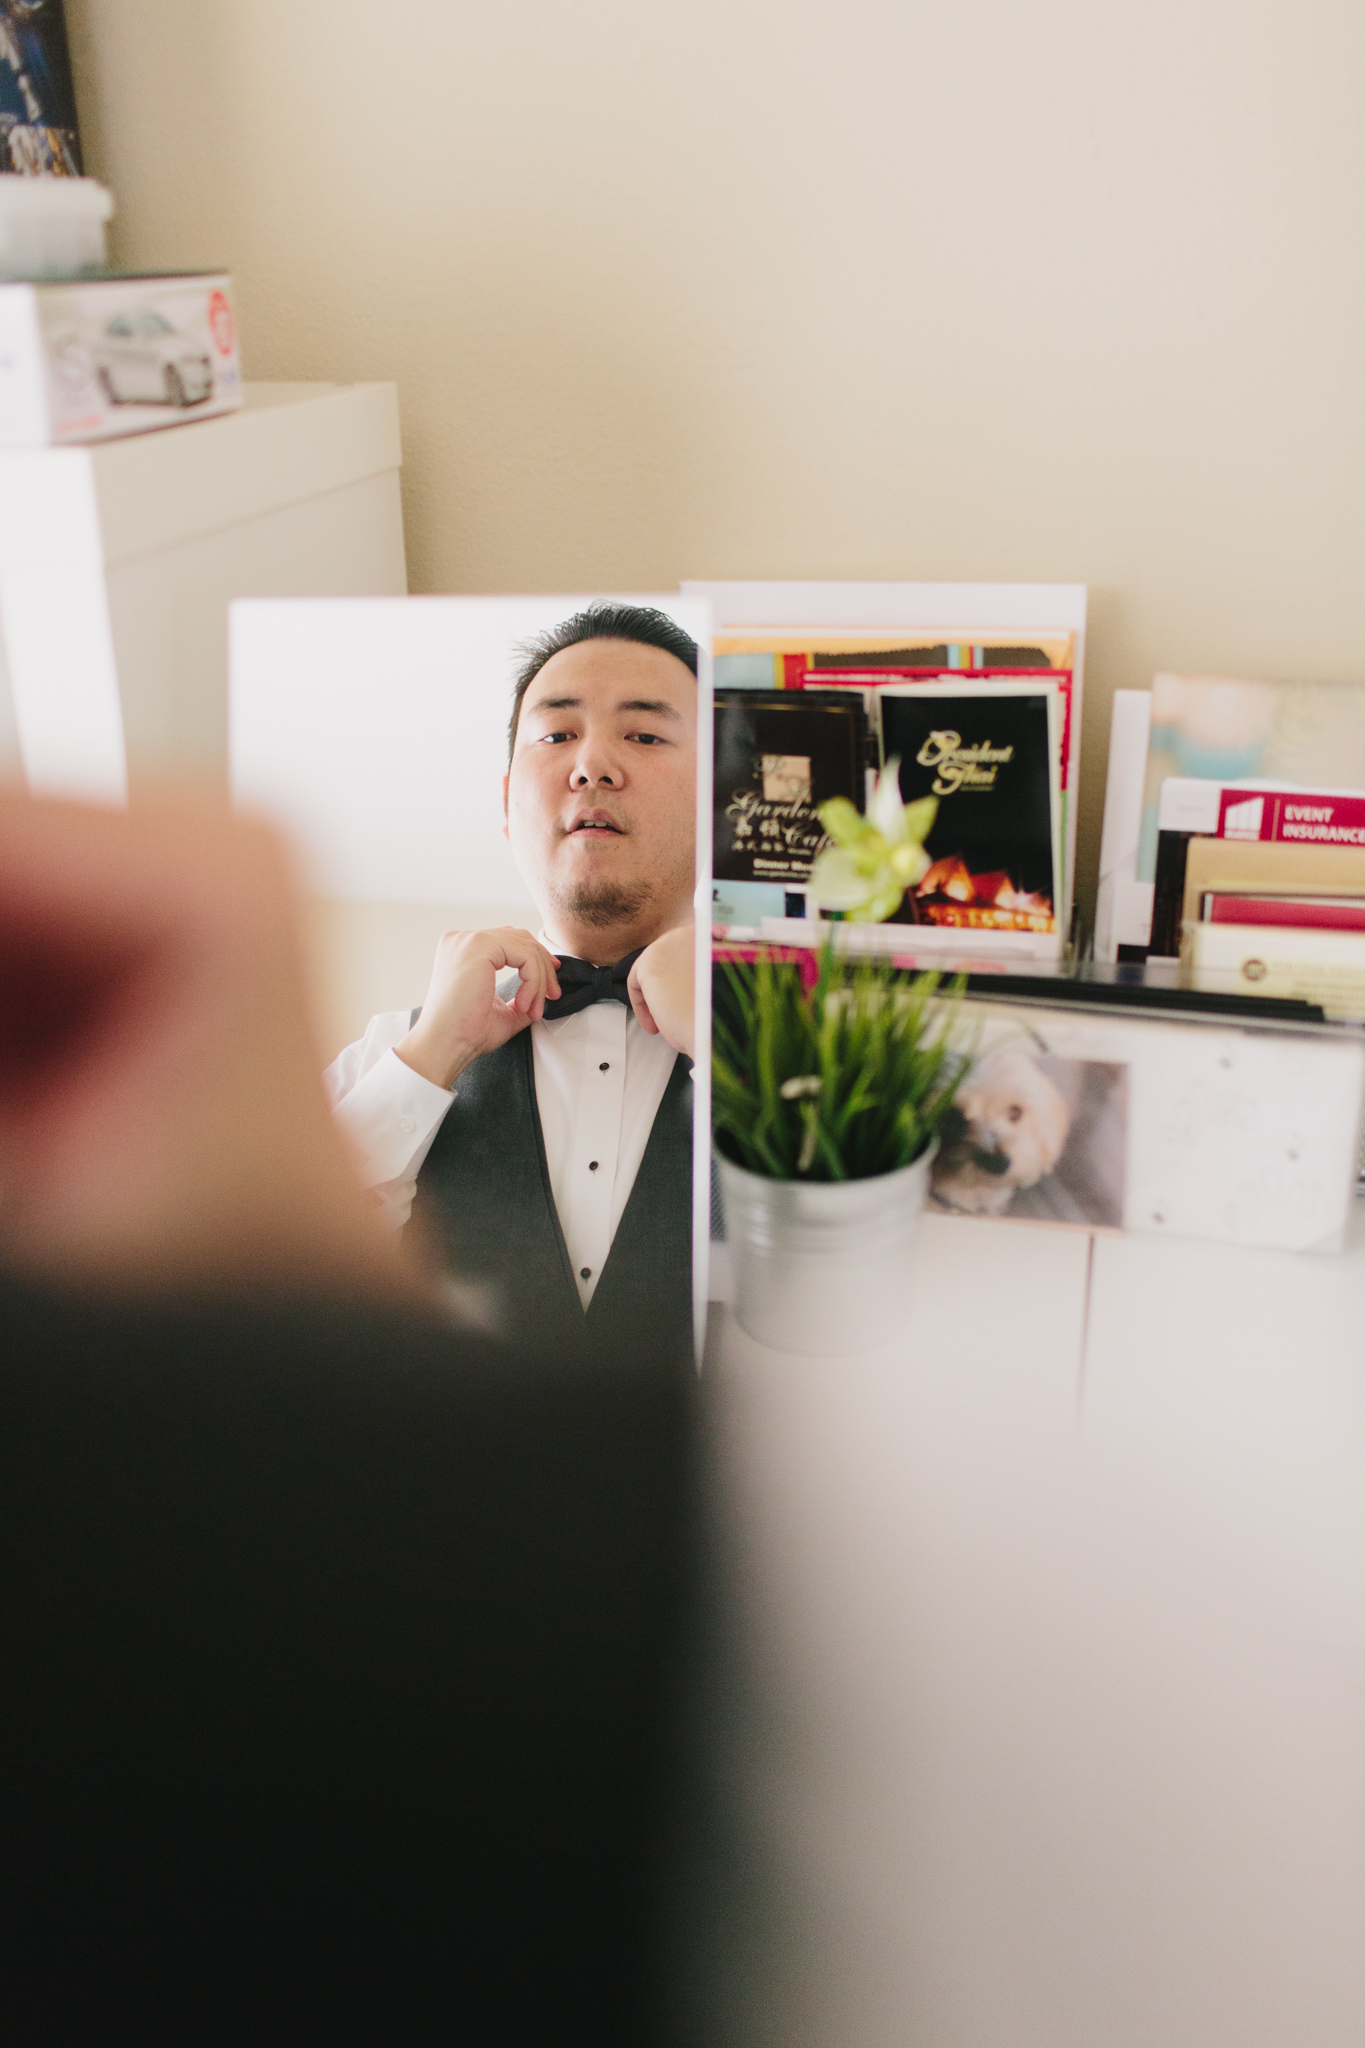 rl-Wedding-FirstLook+Prep-Som+Yusuke-46.jpg